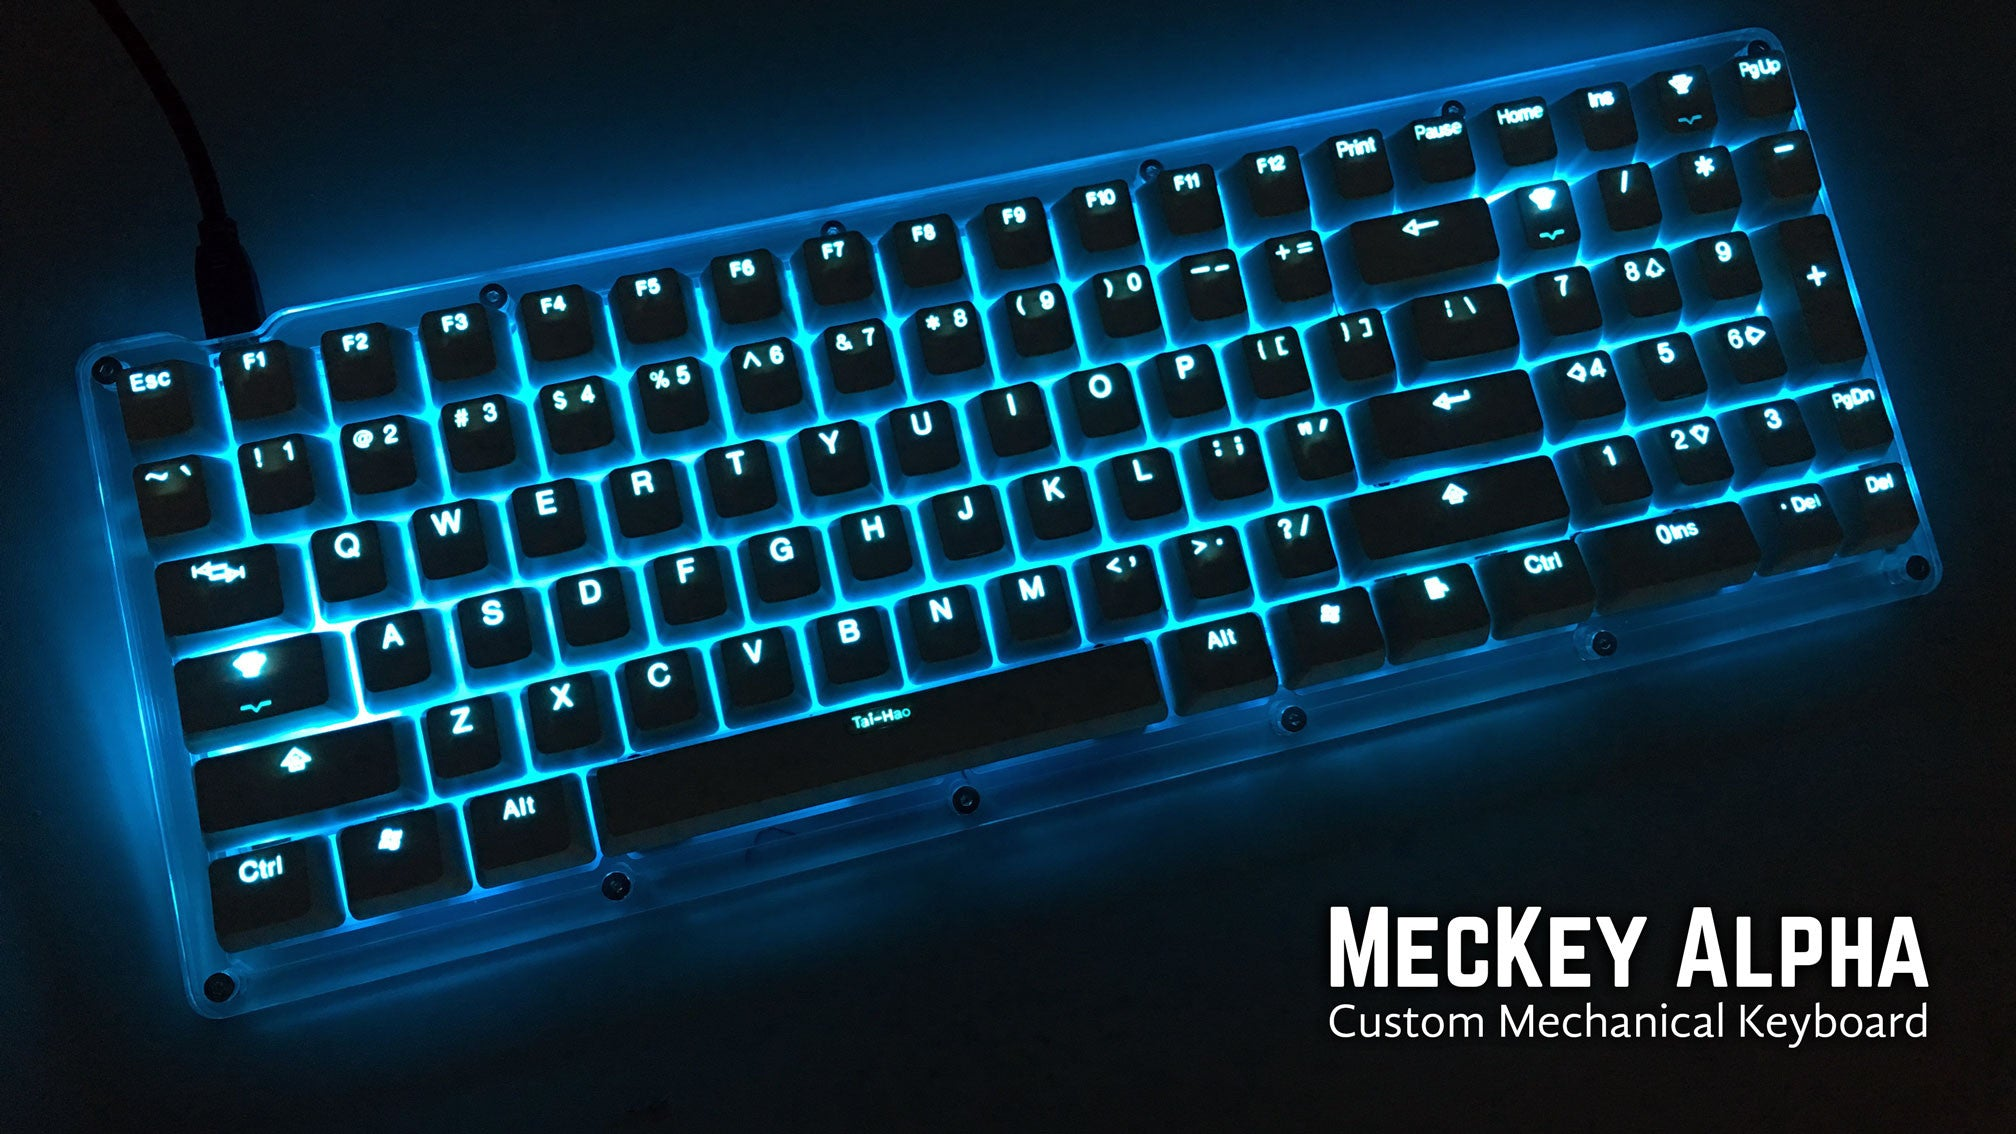 MecKey Alpha 98 Layout Acrylic Mechanical Keyboard Gateron Black Switches TaiHao Backlit Doubleshot Keycaps Display View